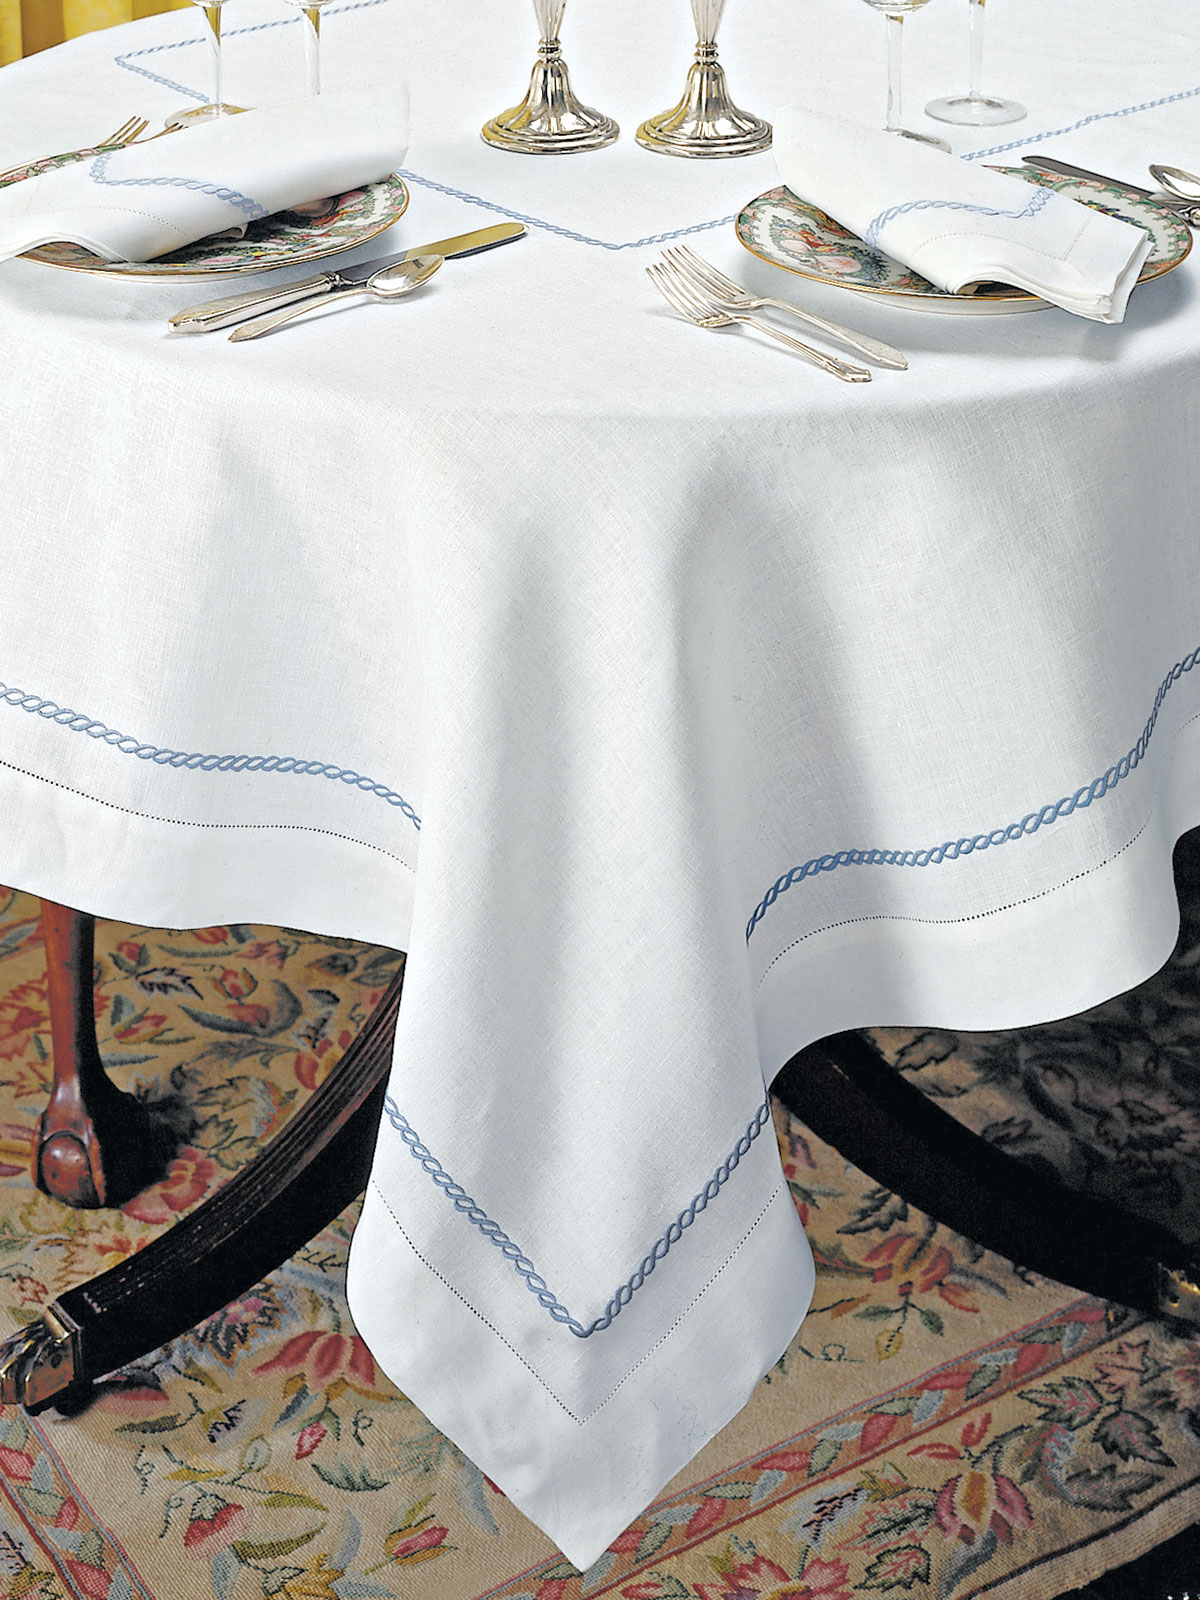 Sienne Scallops Too Fine Table Linens Schweitzer Linen